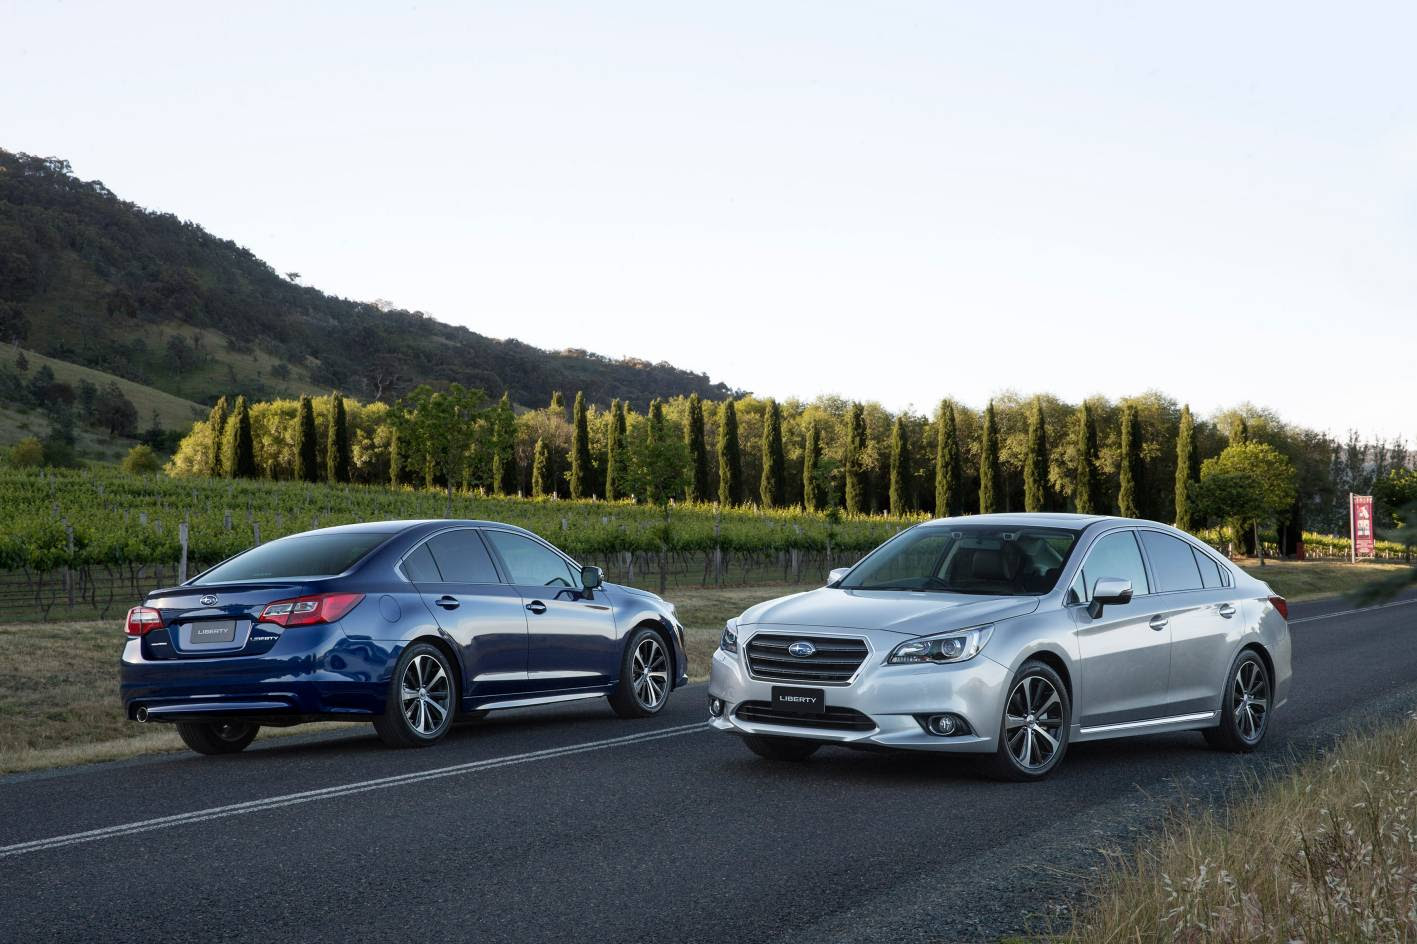 Subaru Australia has announced that it will extend duty reductions to ...